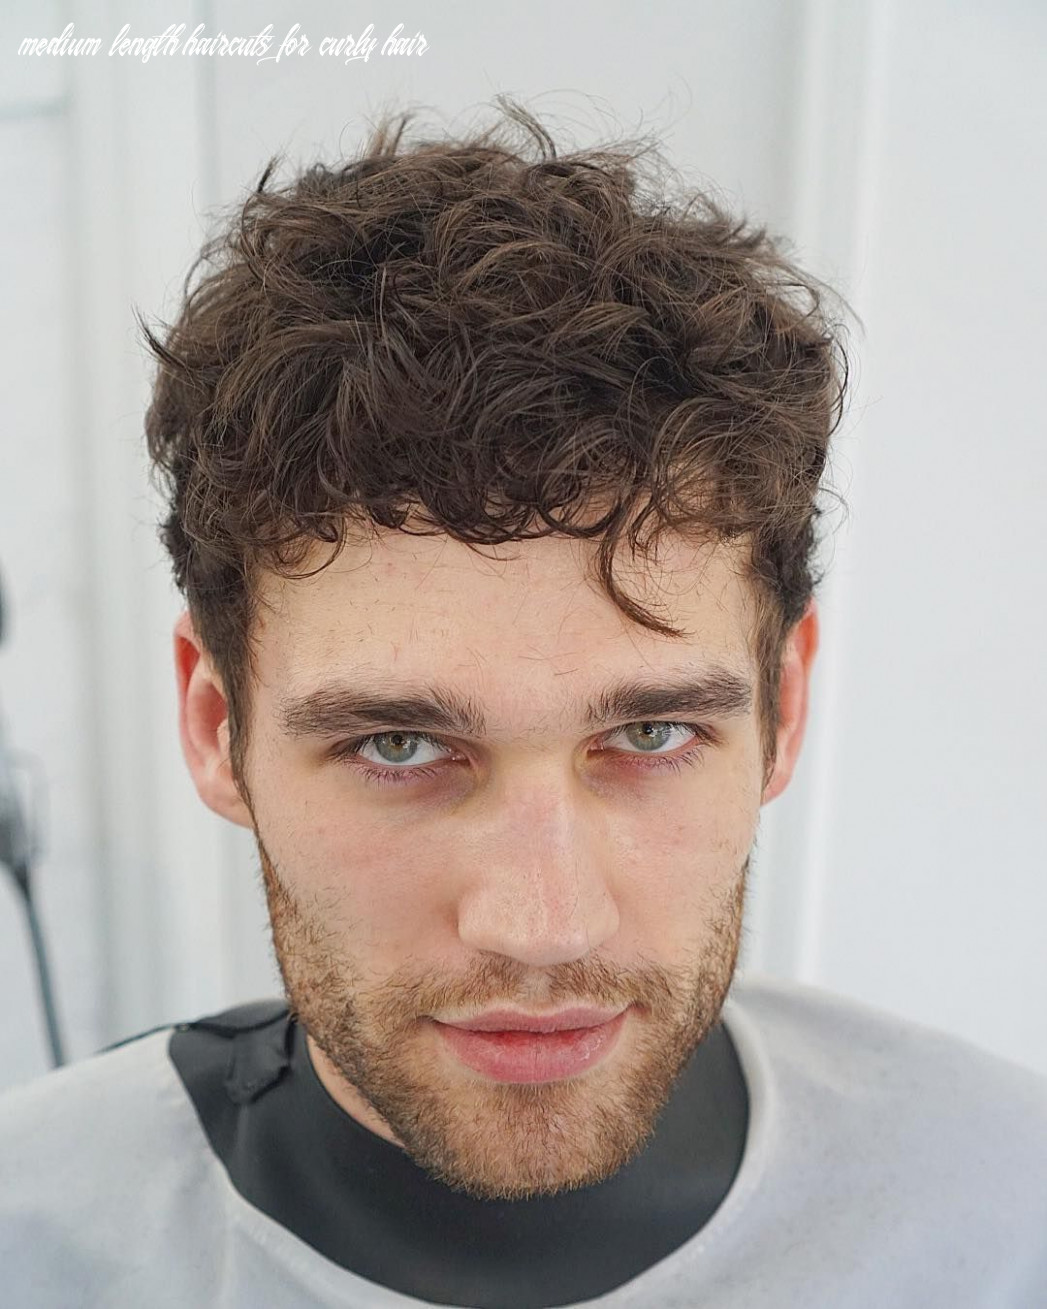 Medium length haircuts for men (10 styles)   haircuts for curly